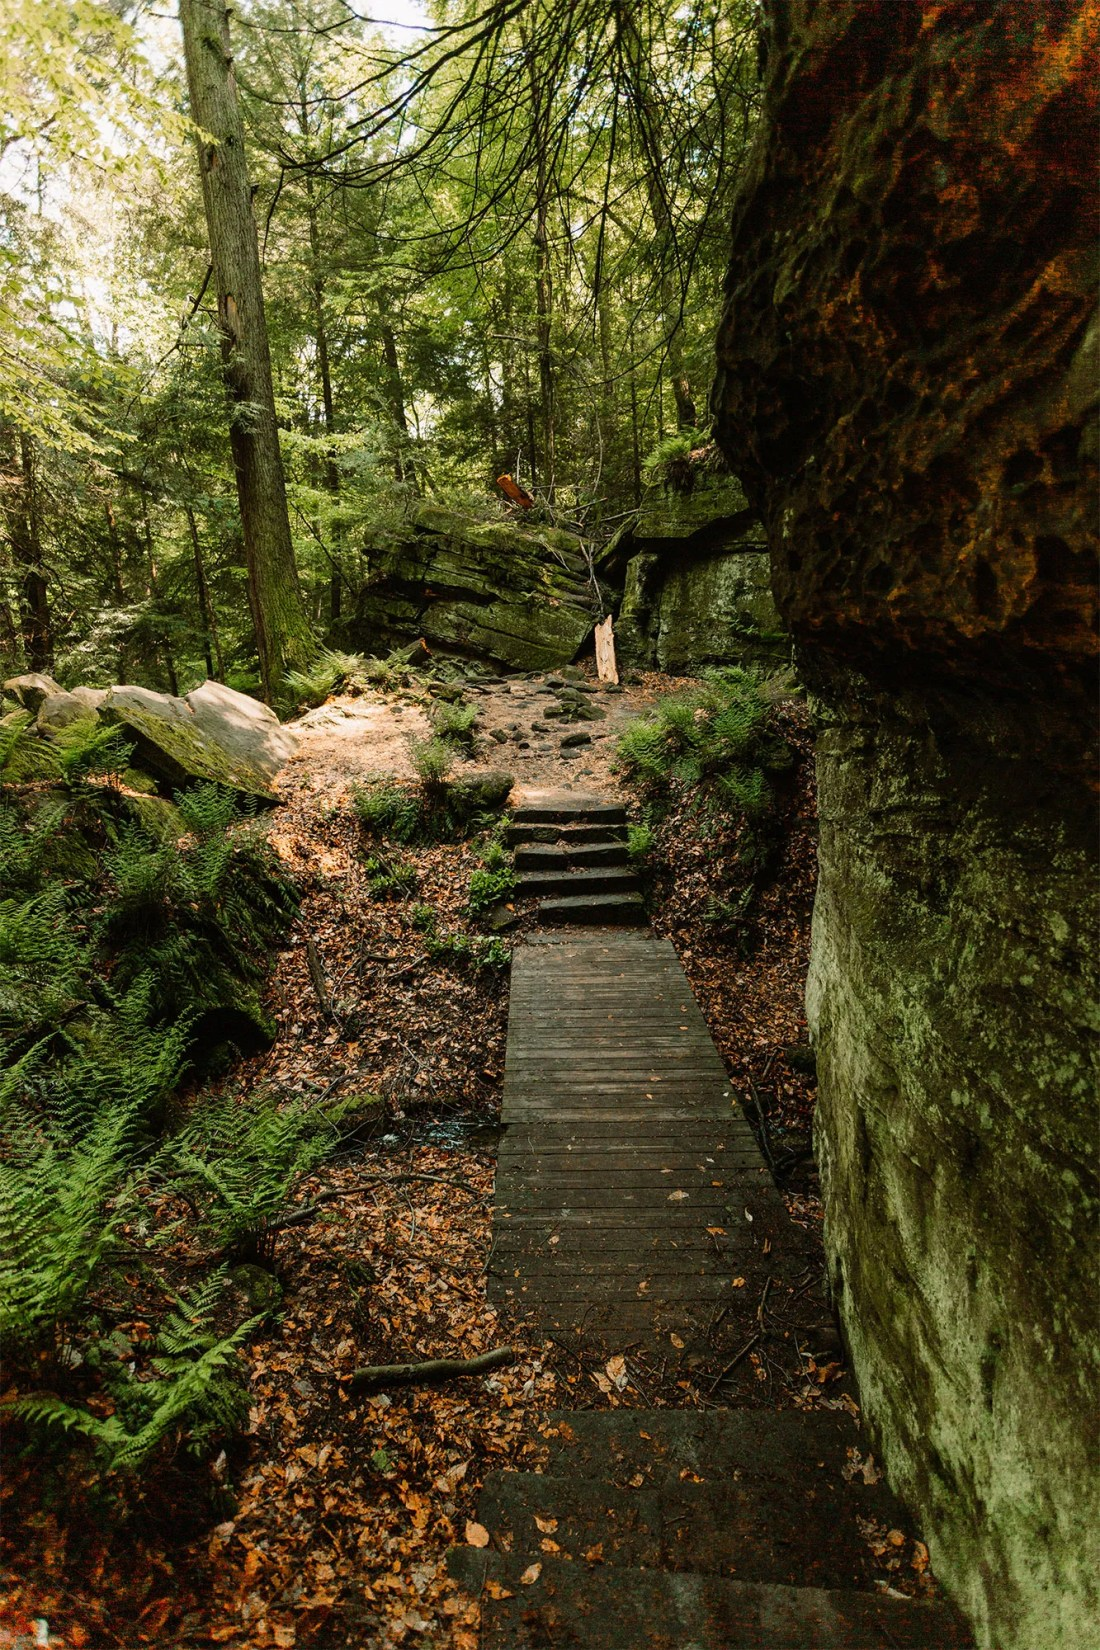 Trail between moss covered rocks